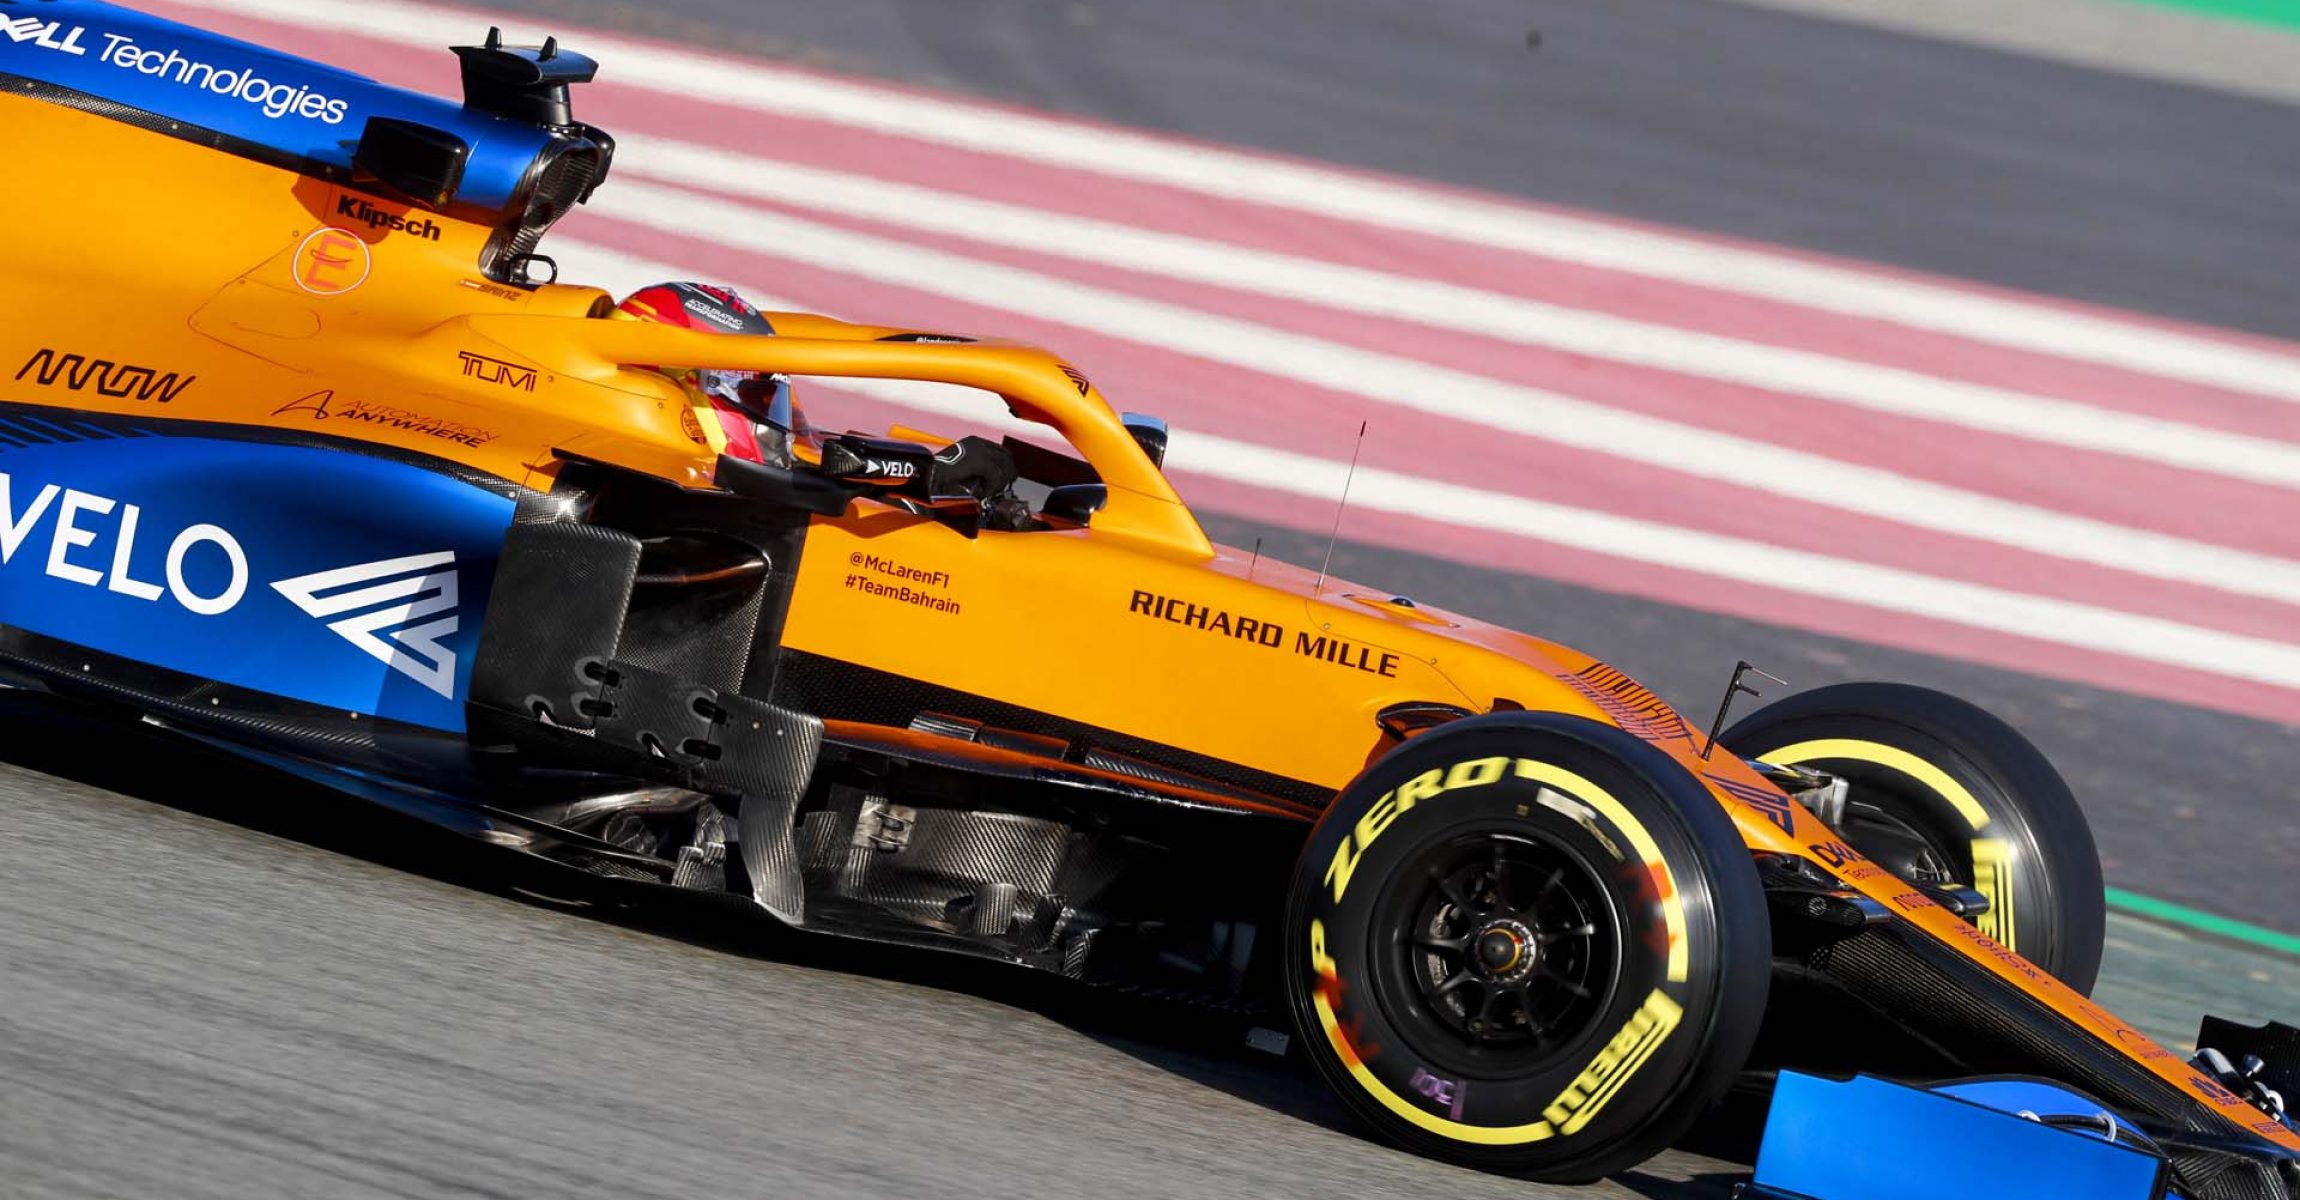 CIRCUIT DE BARCELONA-CATALUNYA, SPAIN - FEBRUARY 19: Carlos Sainz, McLaren MCL35 during the Barcelona February testing I at Circuit de Barcelona-Catalunya on February 19, 2020 in Circuit de Barcelona-Catalunya, Spain. (Photo by Steven Tee / LAT Images)